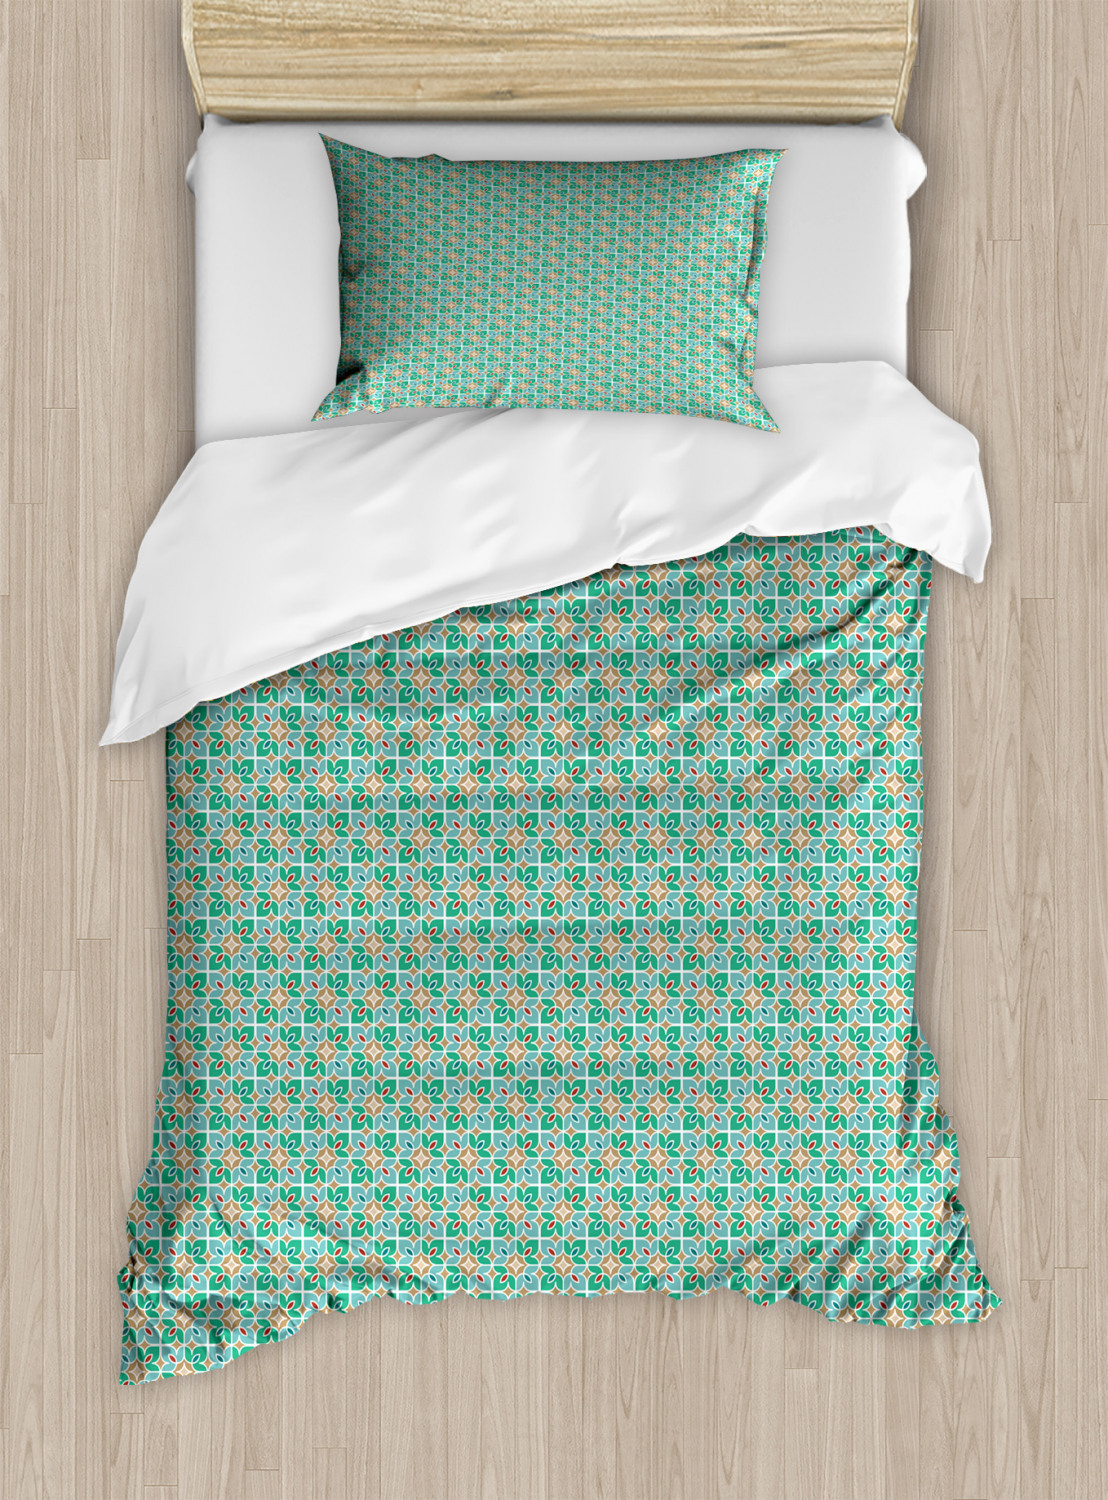 Teal-and-White-Duvet-Cover-Set-Twin-Queen-King-Sizes-with-Pillow-Shams-Ambesonne thumbnail 23